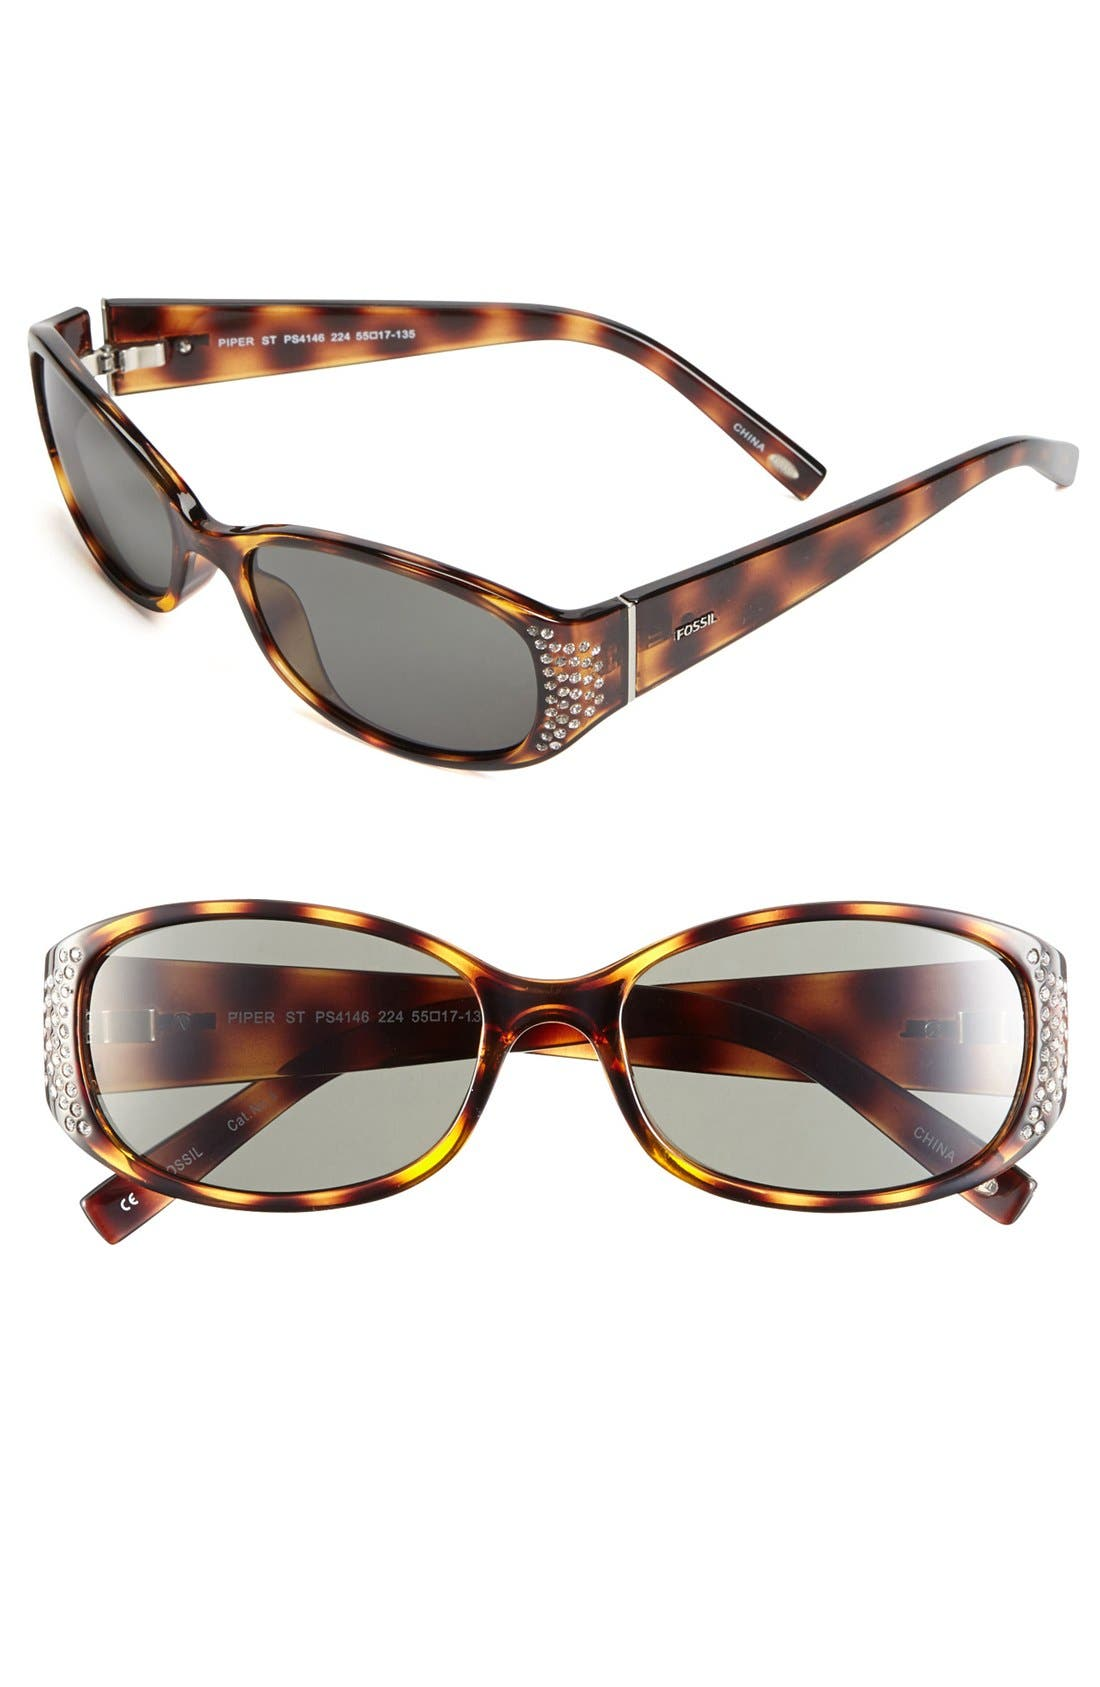 Main Image - Fossil 'Piper Street' 55mm Sunglasses